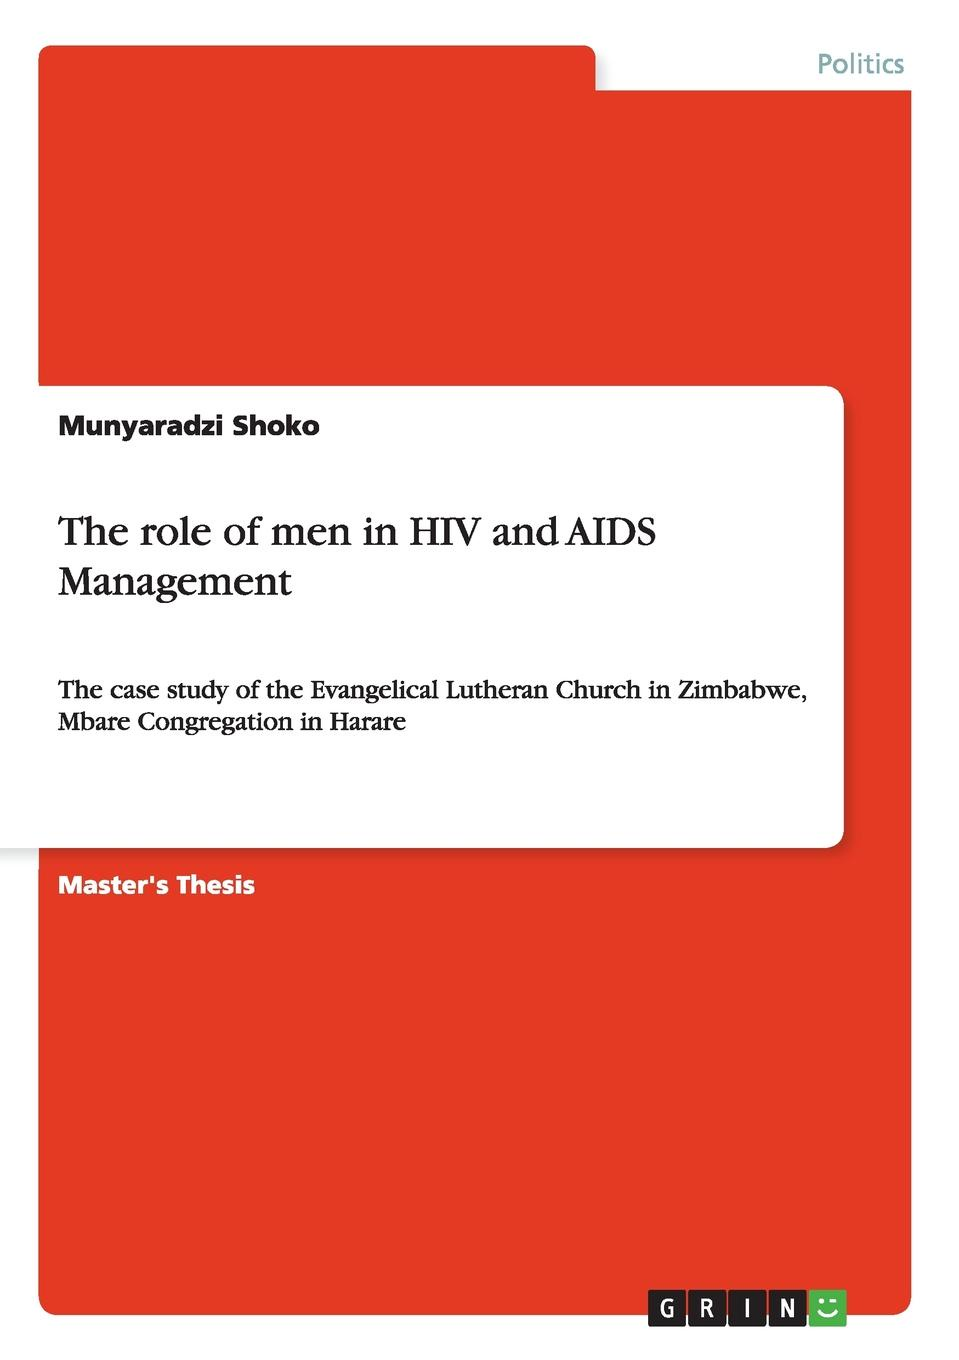 Munyaradzi Shoko The role of men in HIV and AIDS Management недорго, оригинальная цена